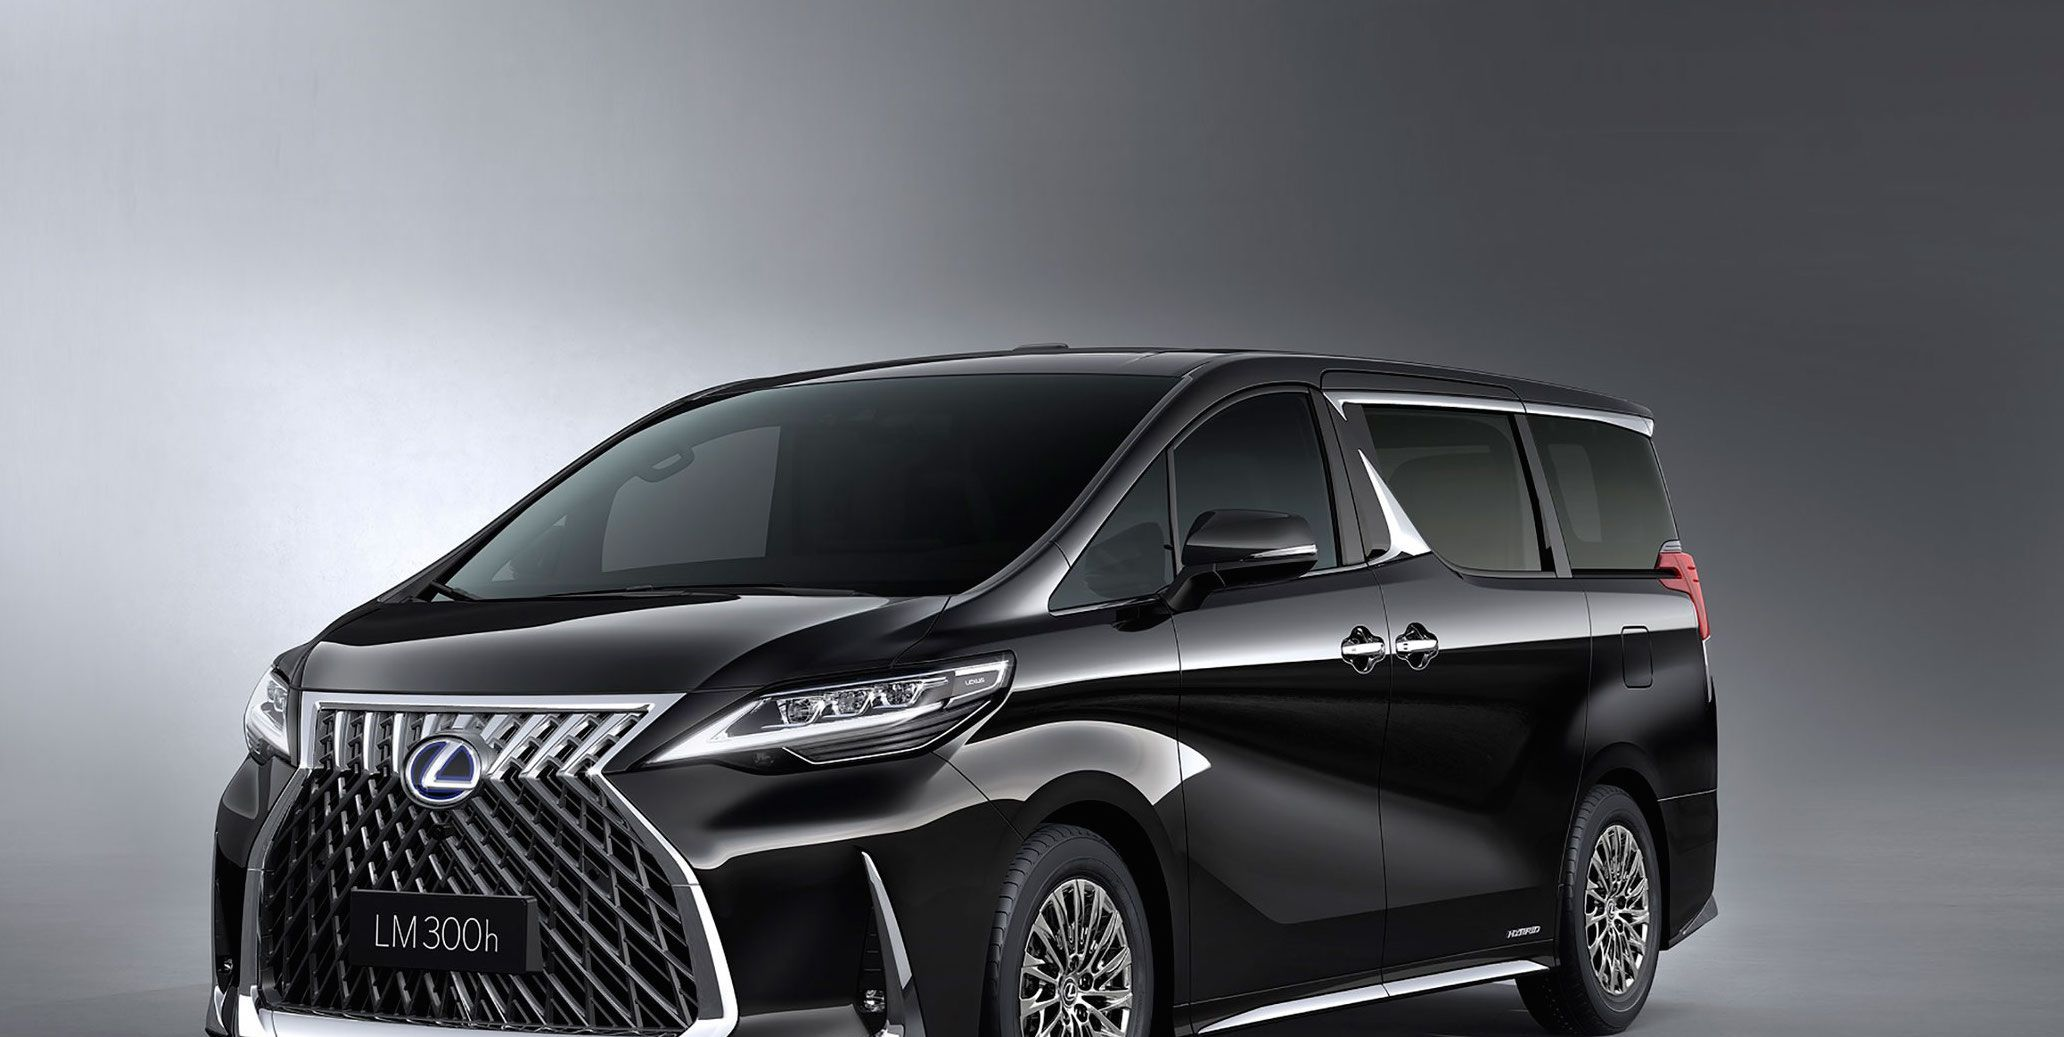 Lexus Van 2020 Price Lexus Lm Minivan Is Executive Transportation You Must See To Believe Lexus Minivan Assembly Lexus Mini Van Lexus Gx